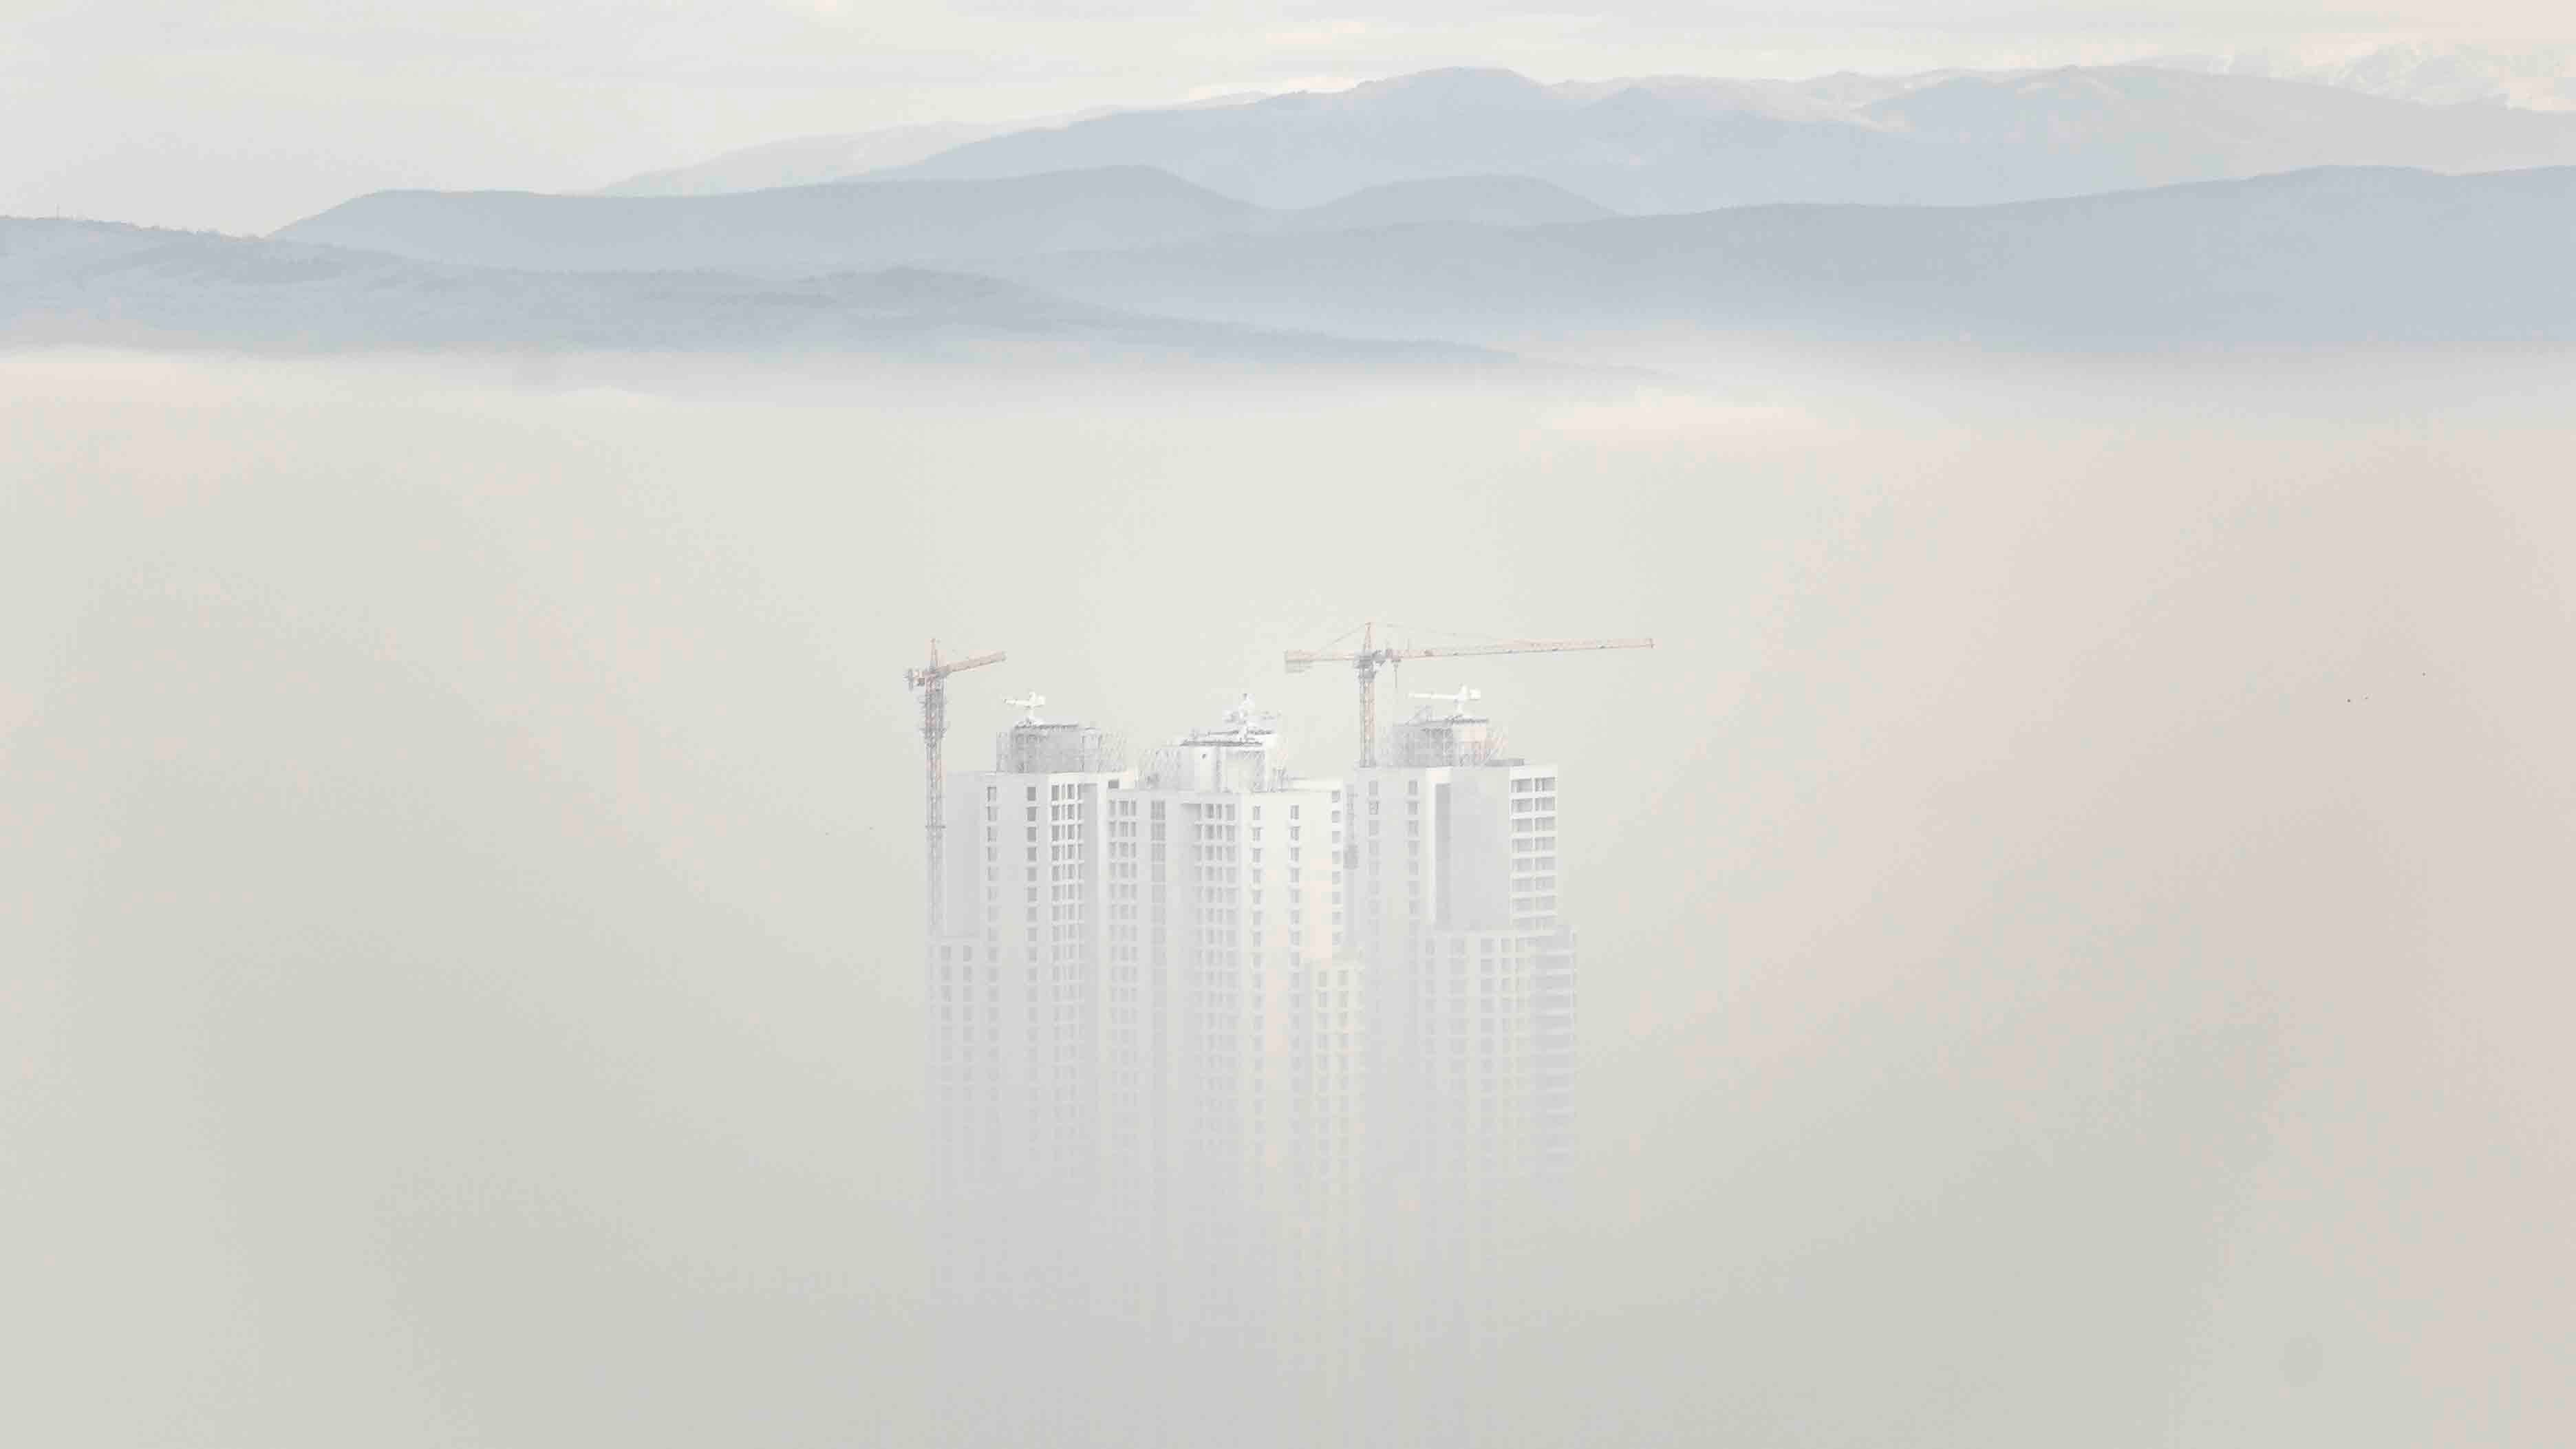 In winter, pollution emissions combined with the local geography serves to trap smog over the city of Skopje, North Macedonia (Credit: Getty Images)